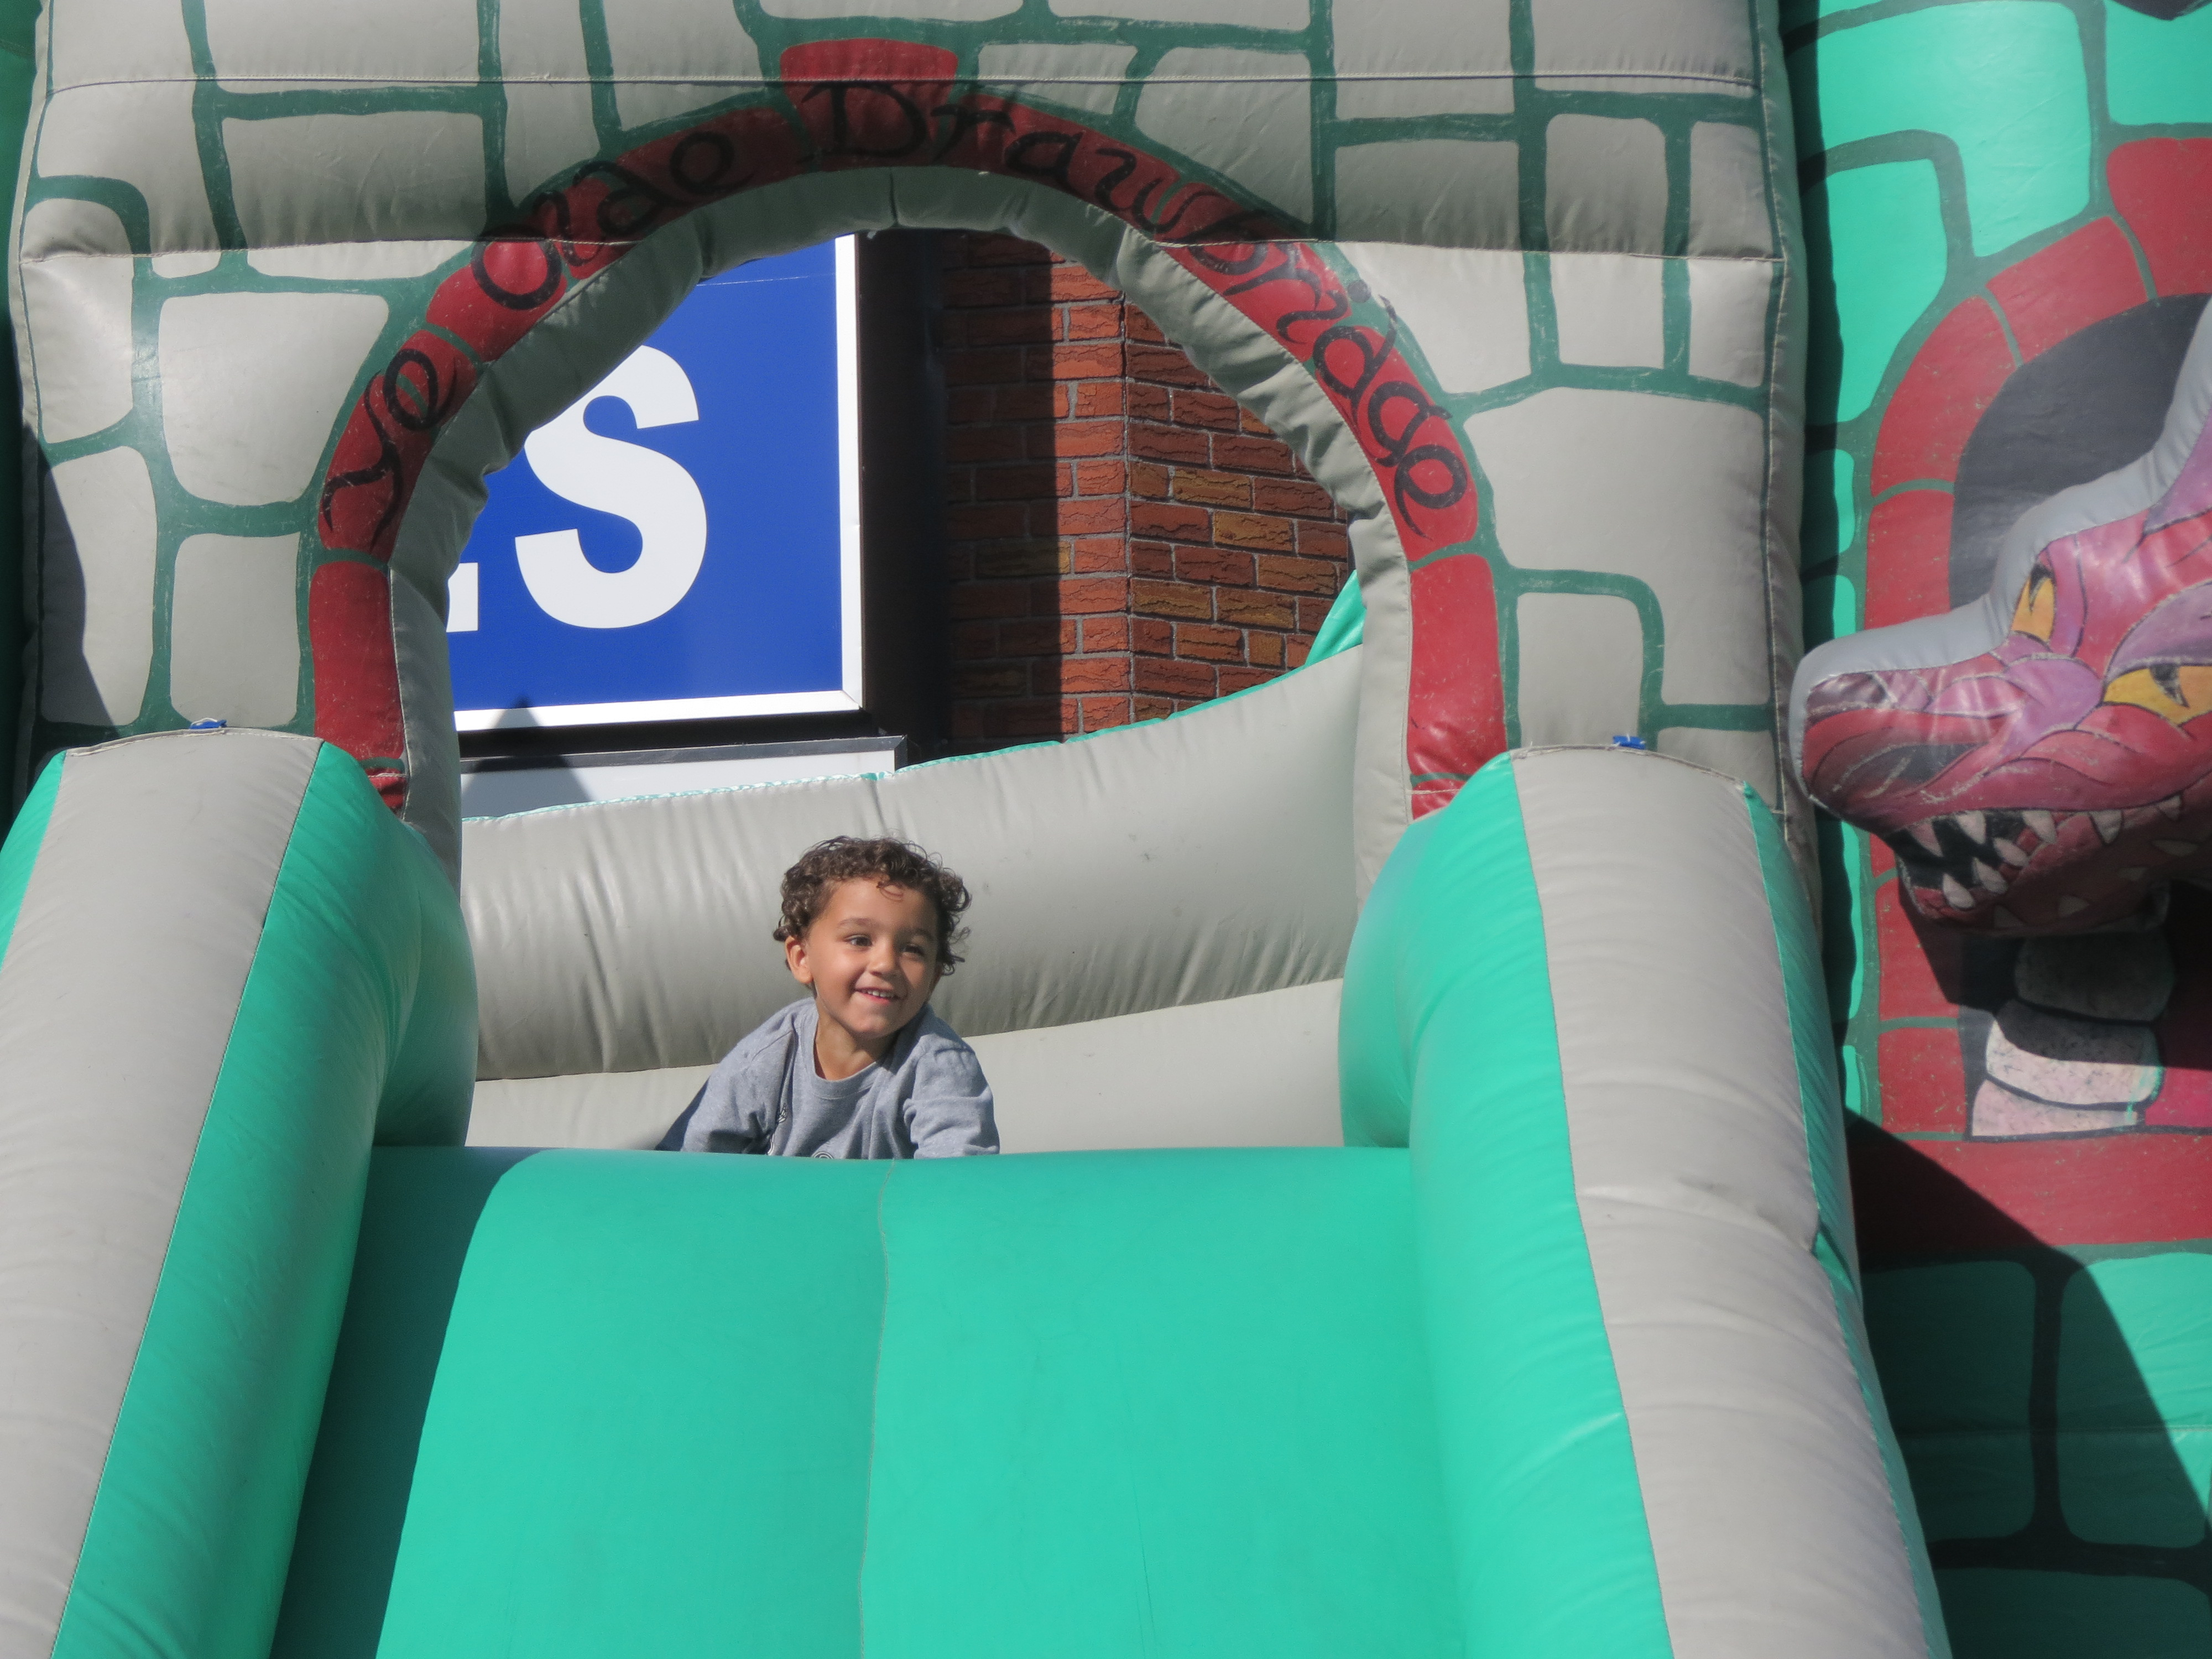 Isaiah Diaz, 3, of Ridgewood, peeks over the edge of one of a number of inflatable slides at the festivities.